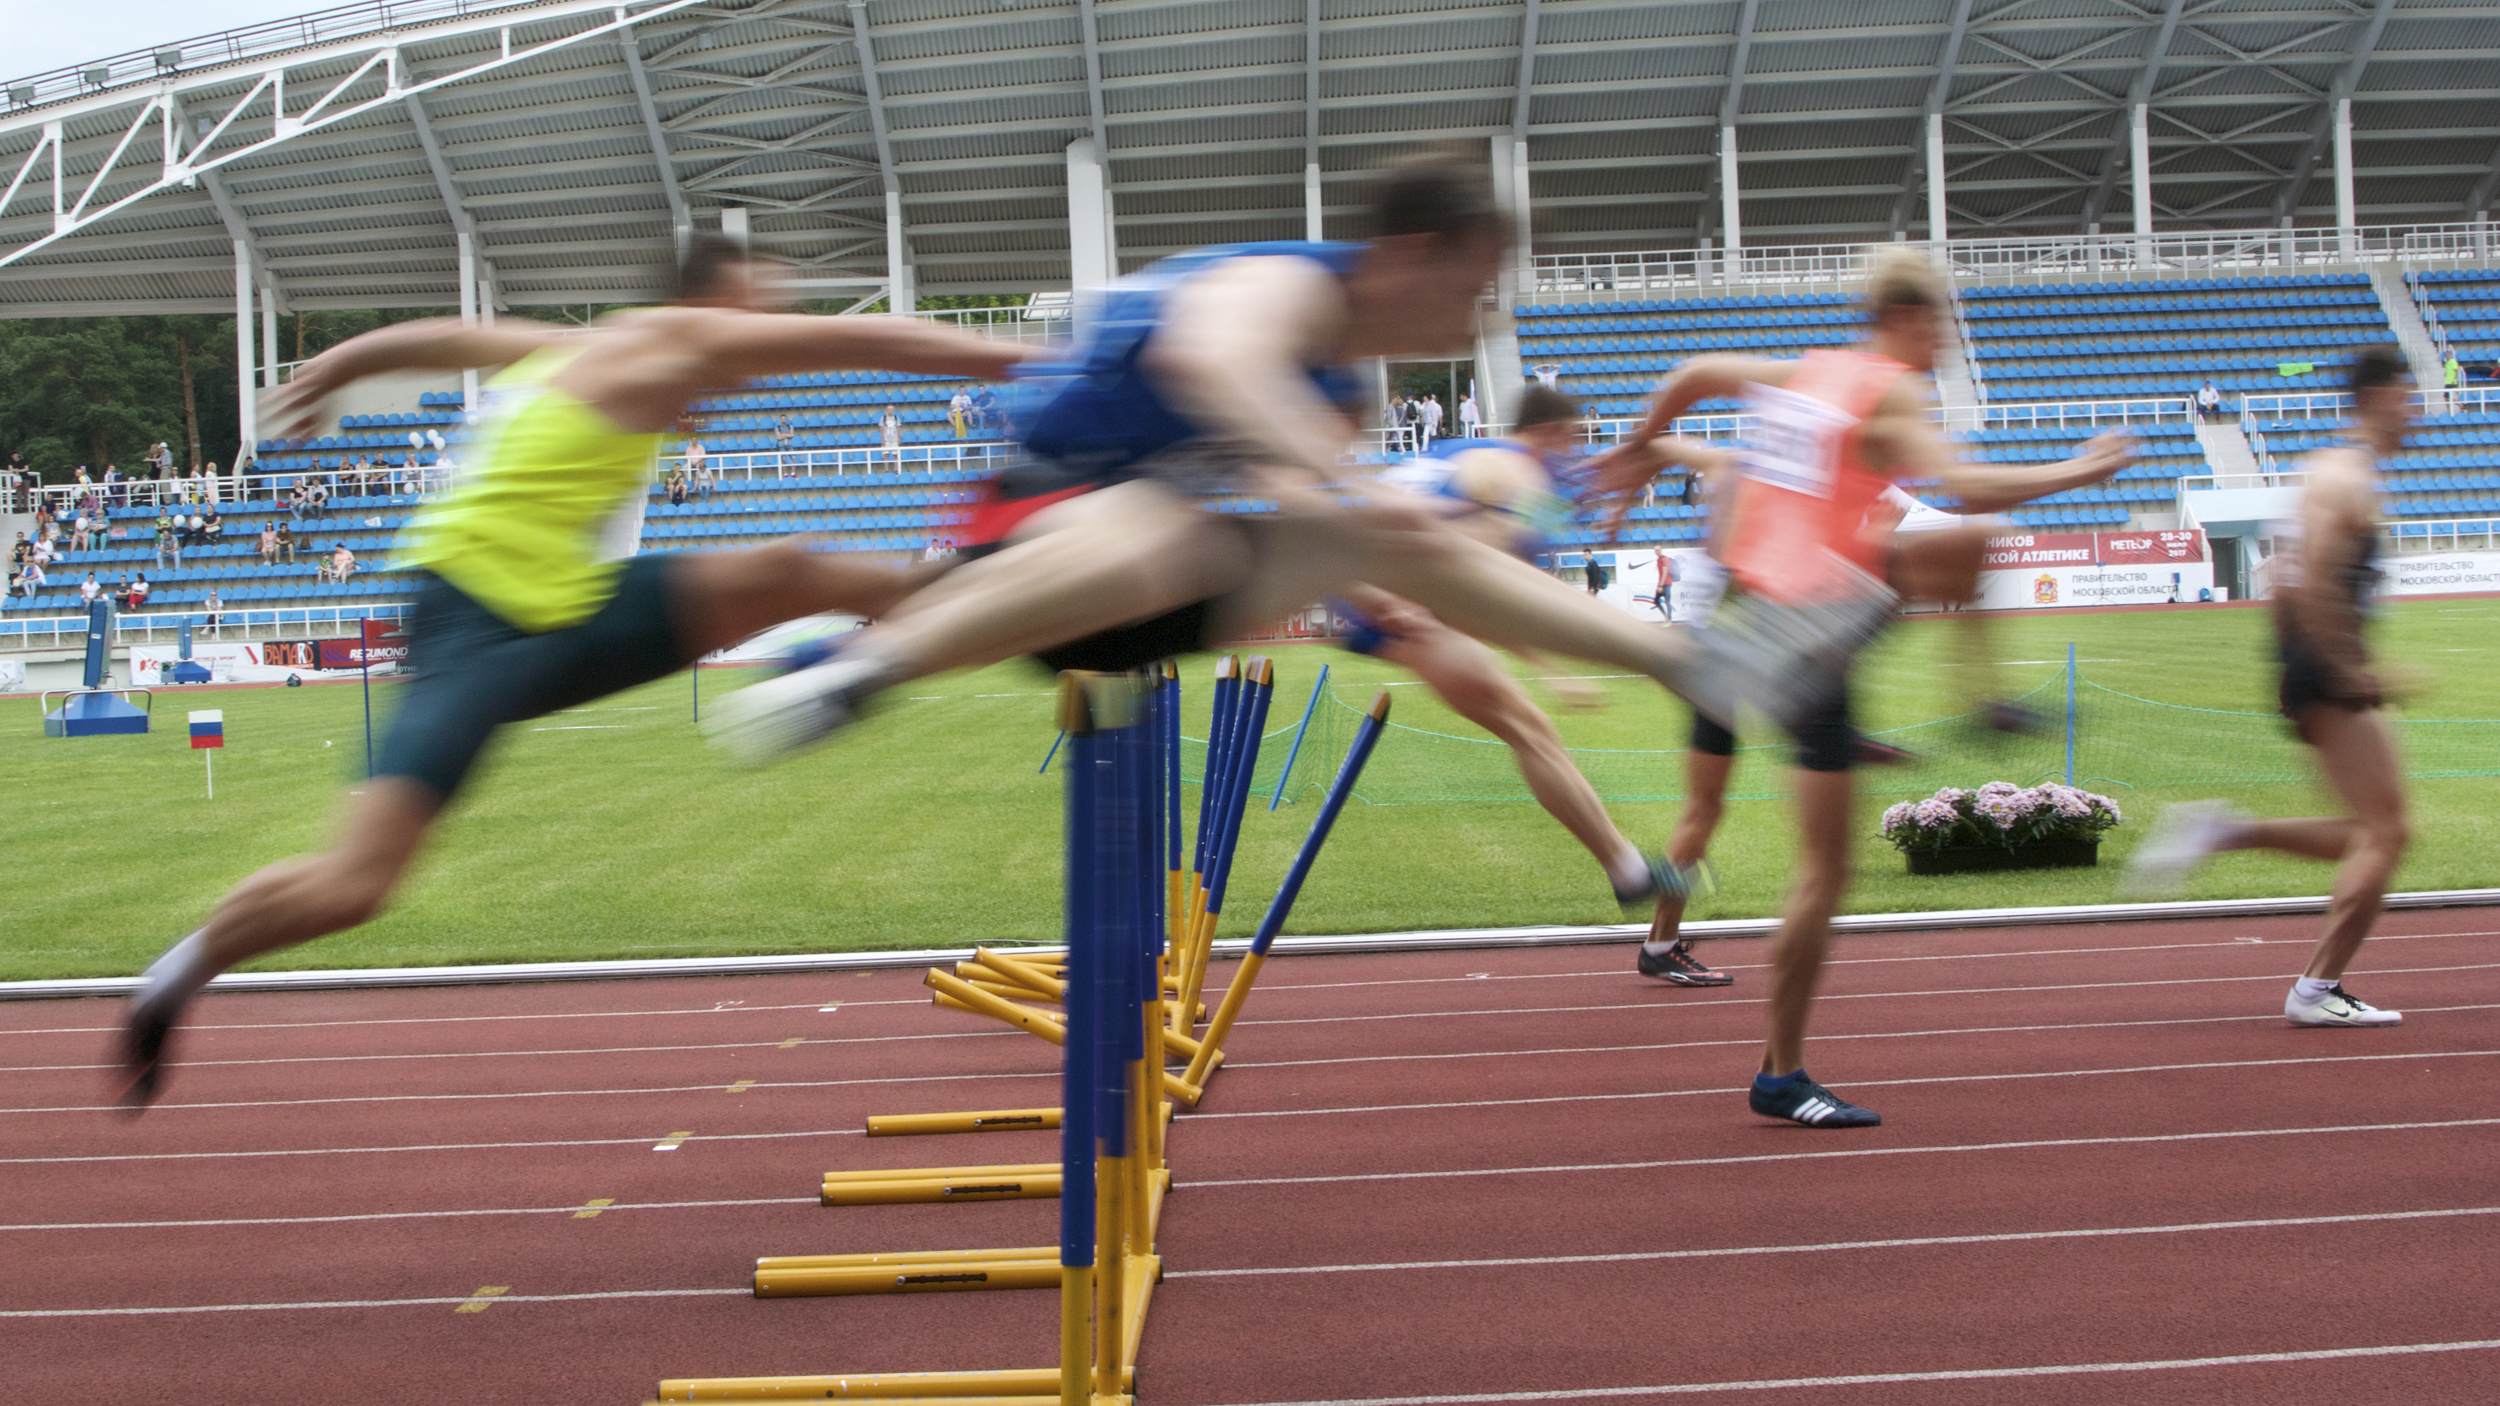 Athletes compete in the 110-meter hurdles semifinal run during the national track and field championship in Moscow in July 2017